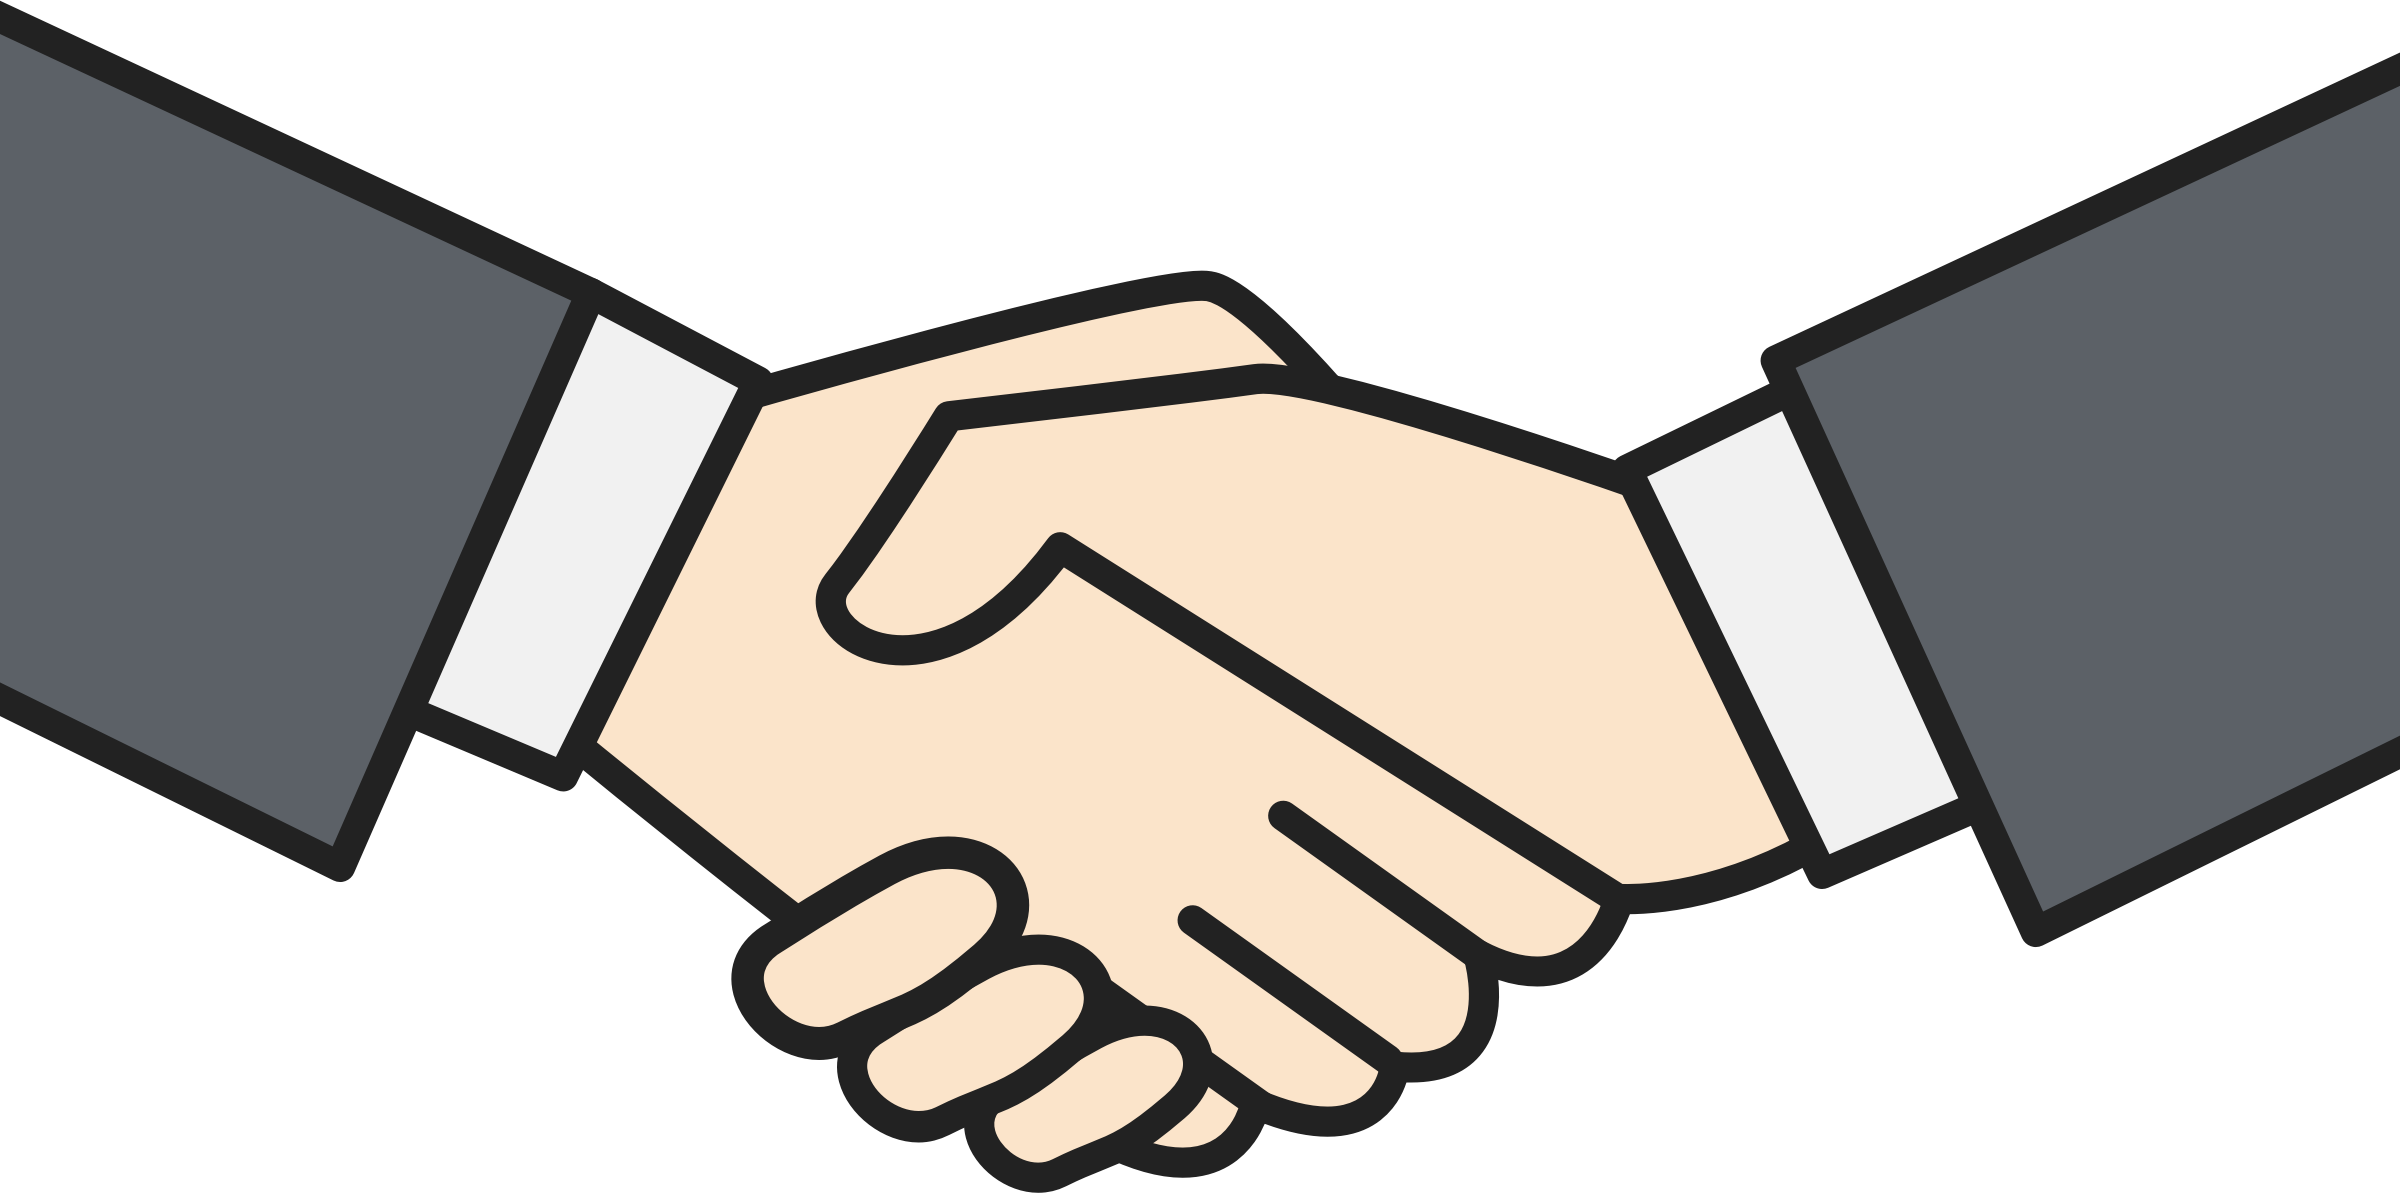 clipart royalty free library Handshake clipart welcome. Big image png